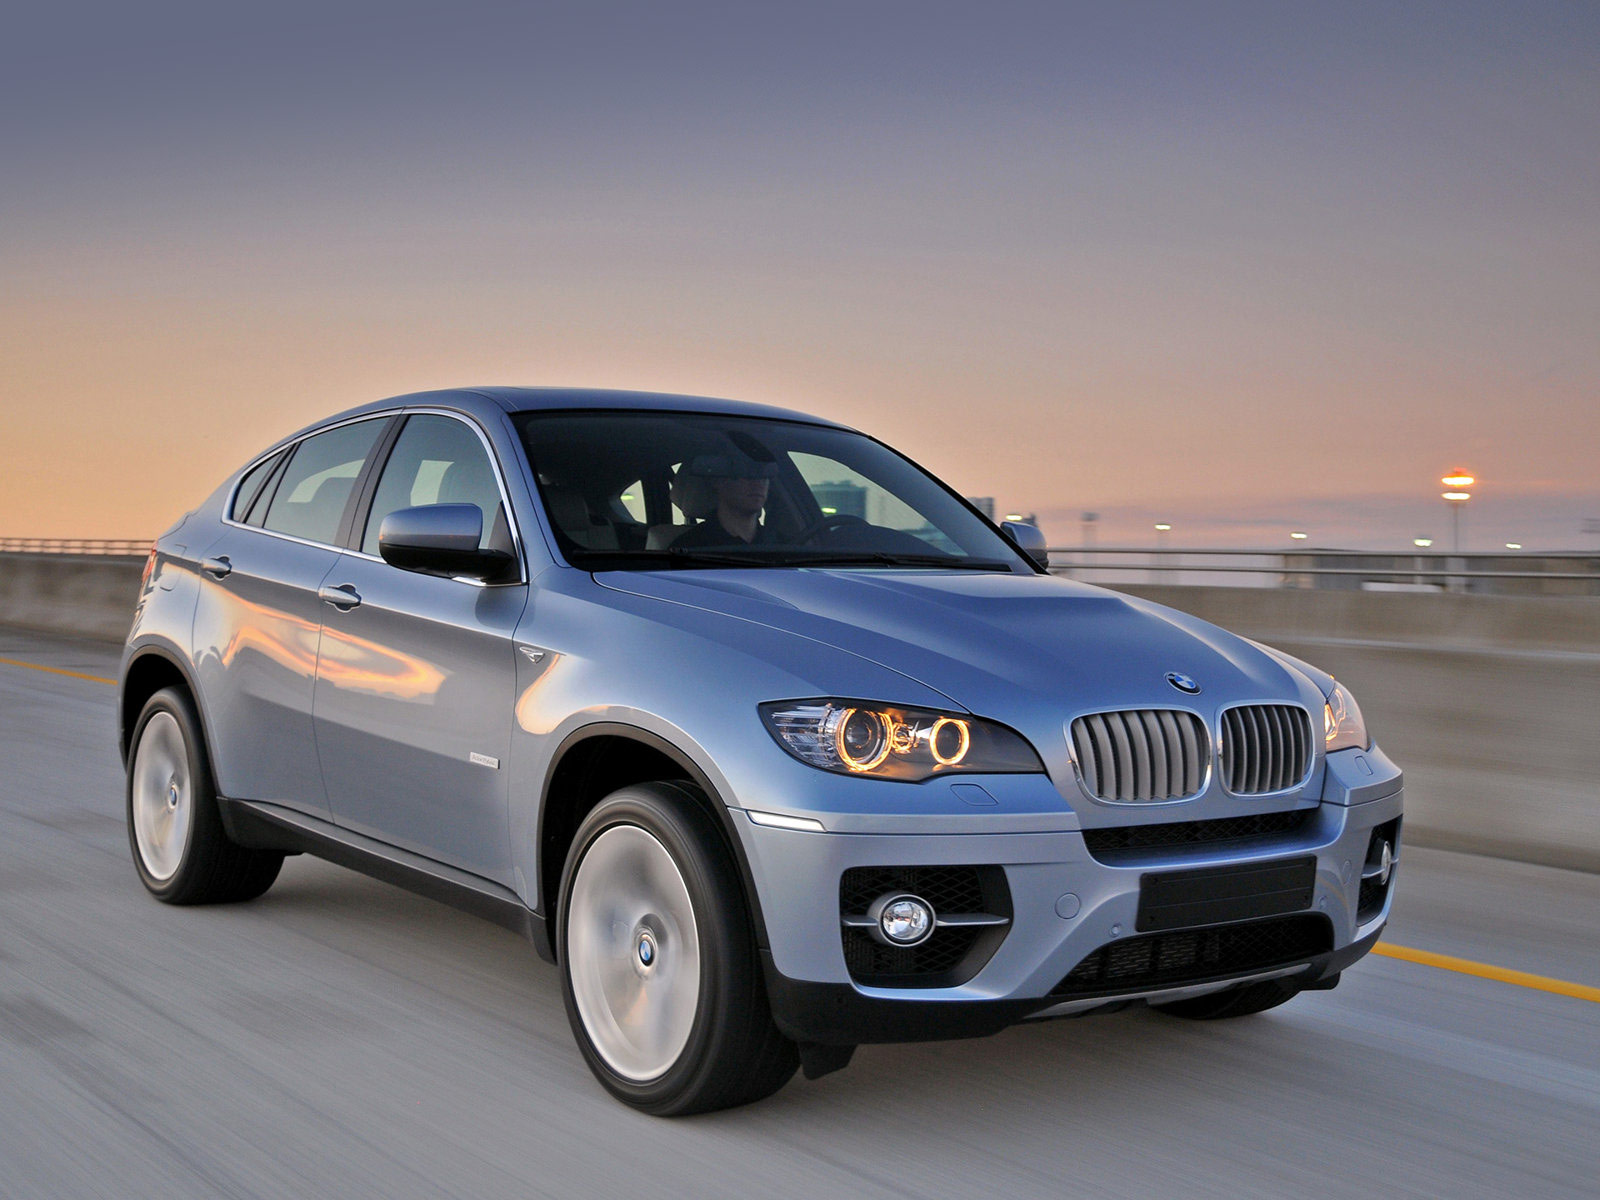 accident lawyers info 2010 bmw x6 activehybrid wallpapers. Black Bedroom Furniture Sets. Home Design Ideas